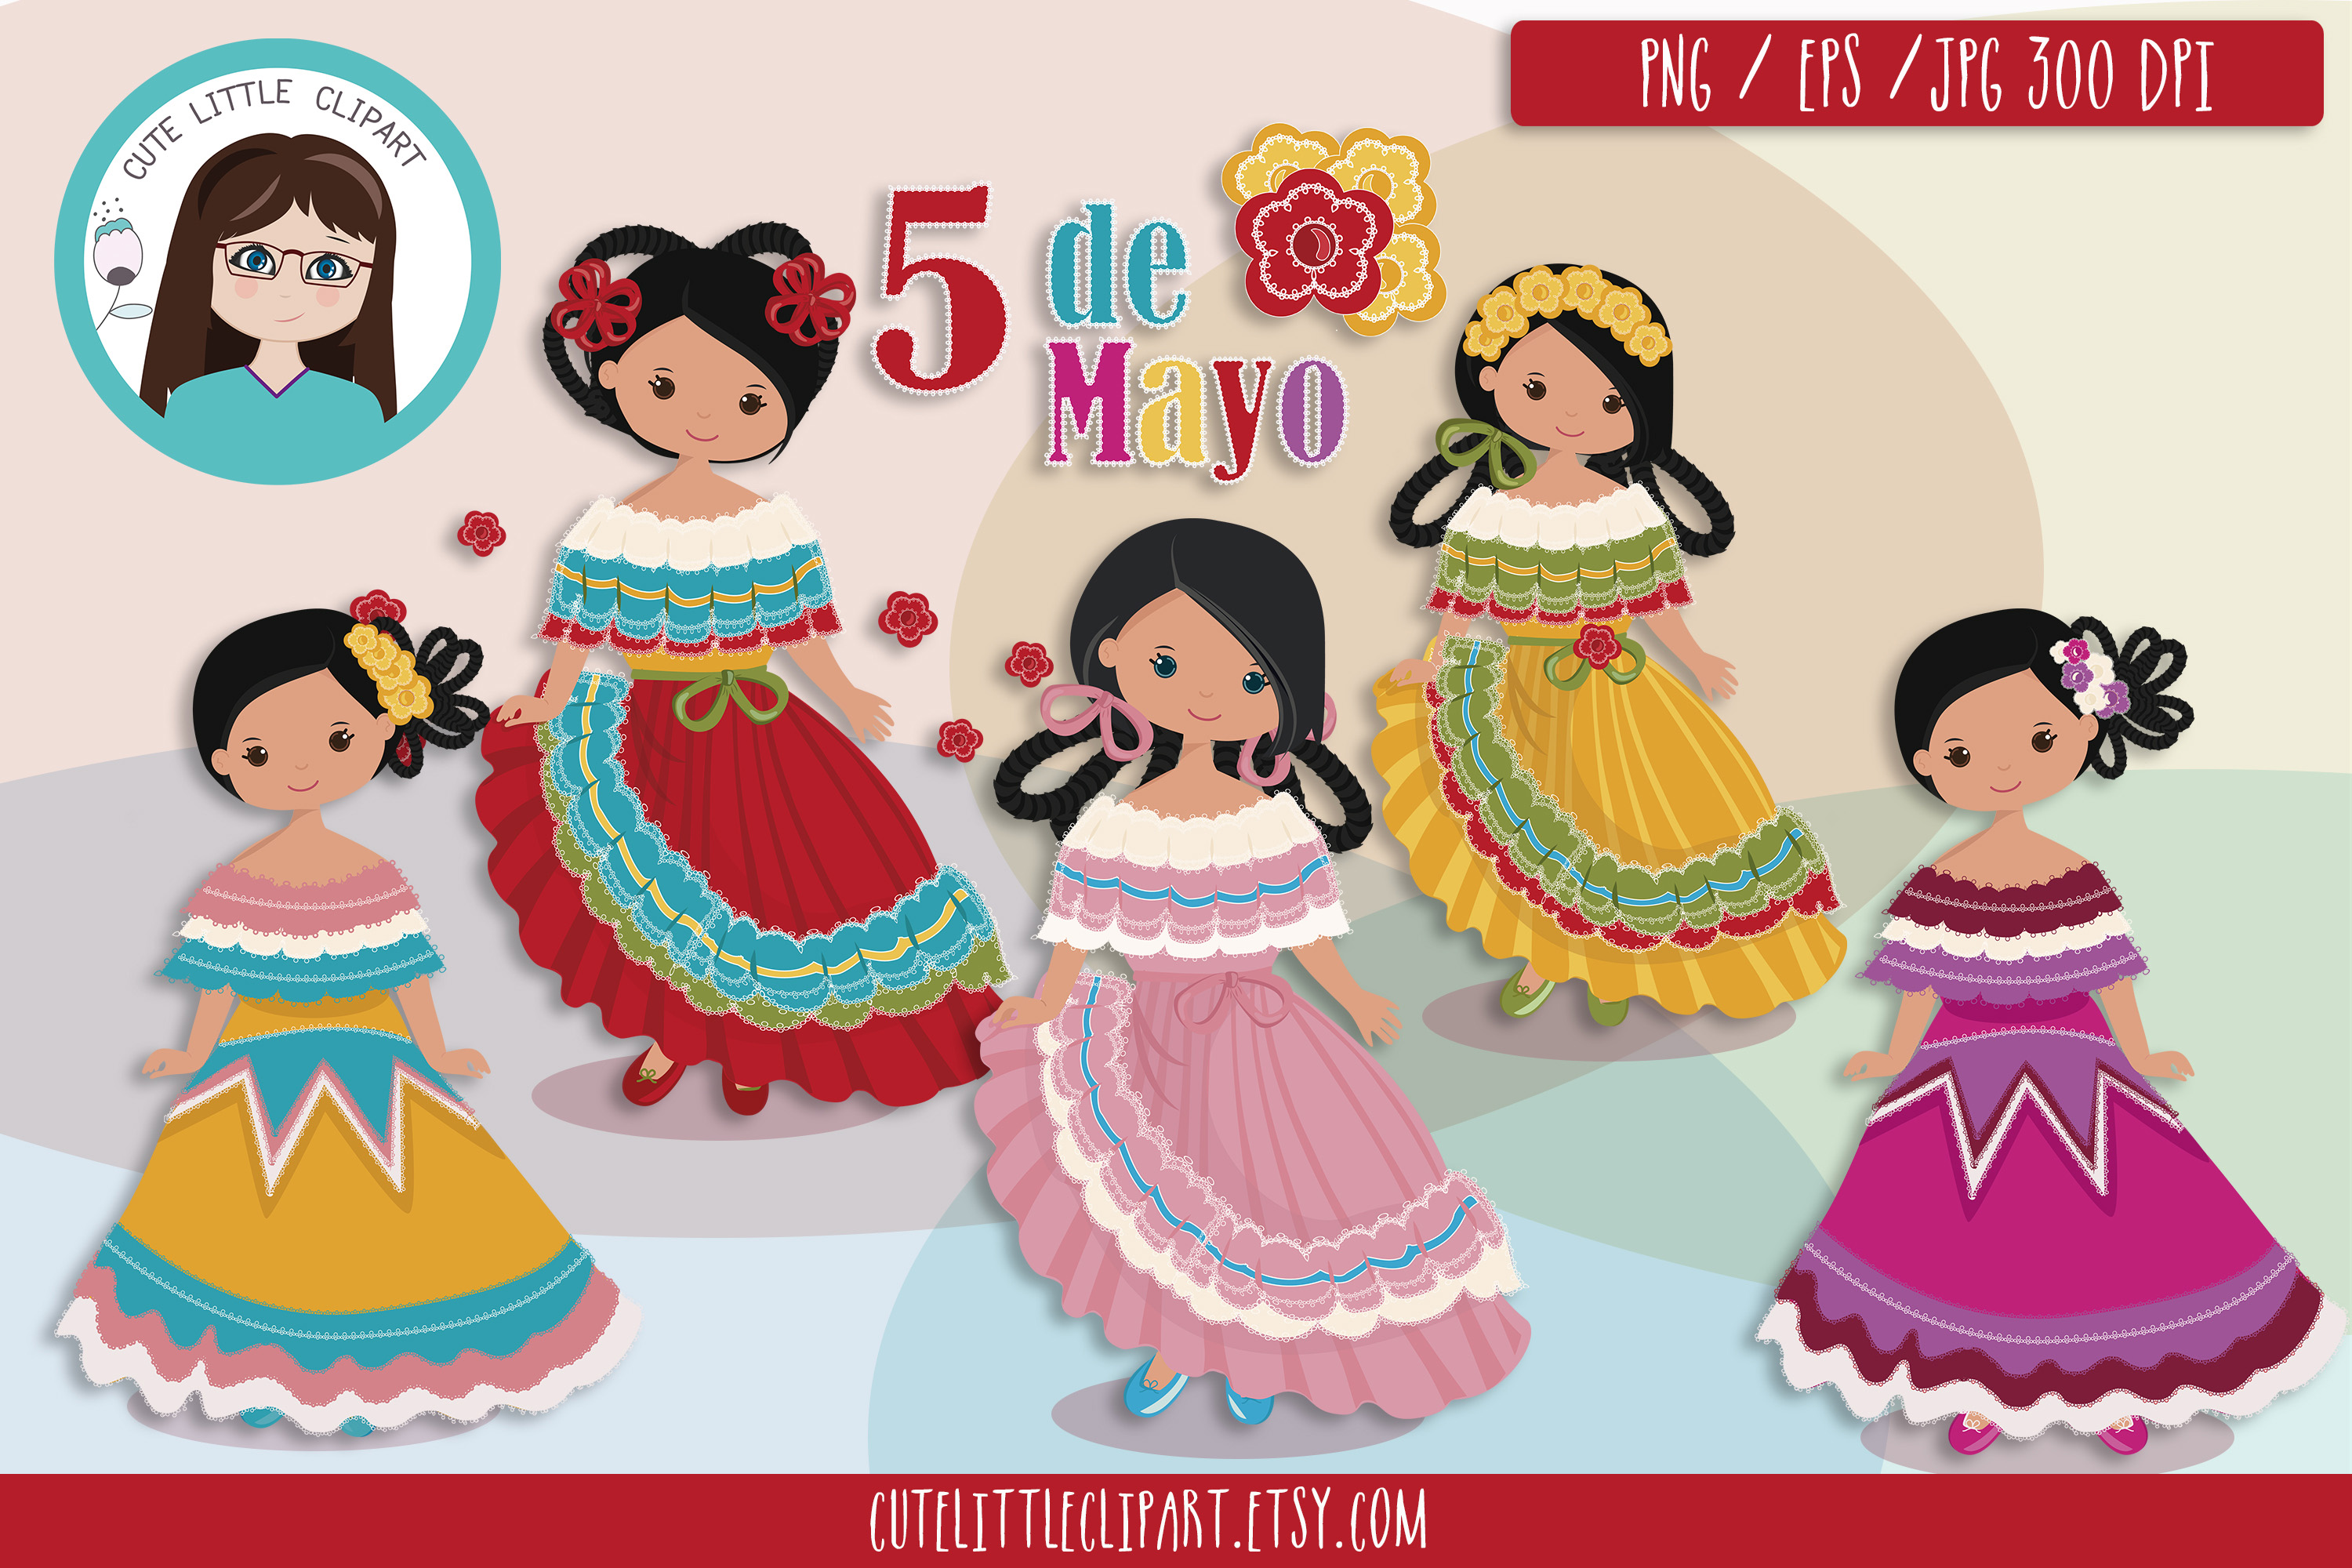 Download Free 5 De Mayo Girls Cliparts Graphic By Cutelittleclipart Creative for Cricut Explore, Silhouette and other cutting machines.